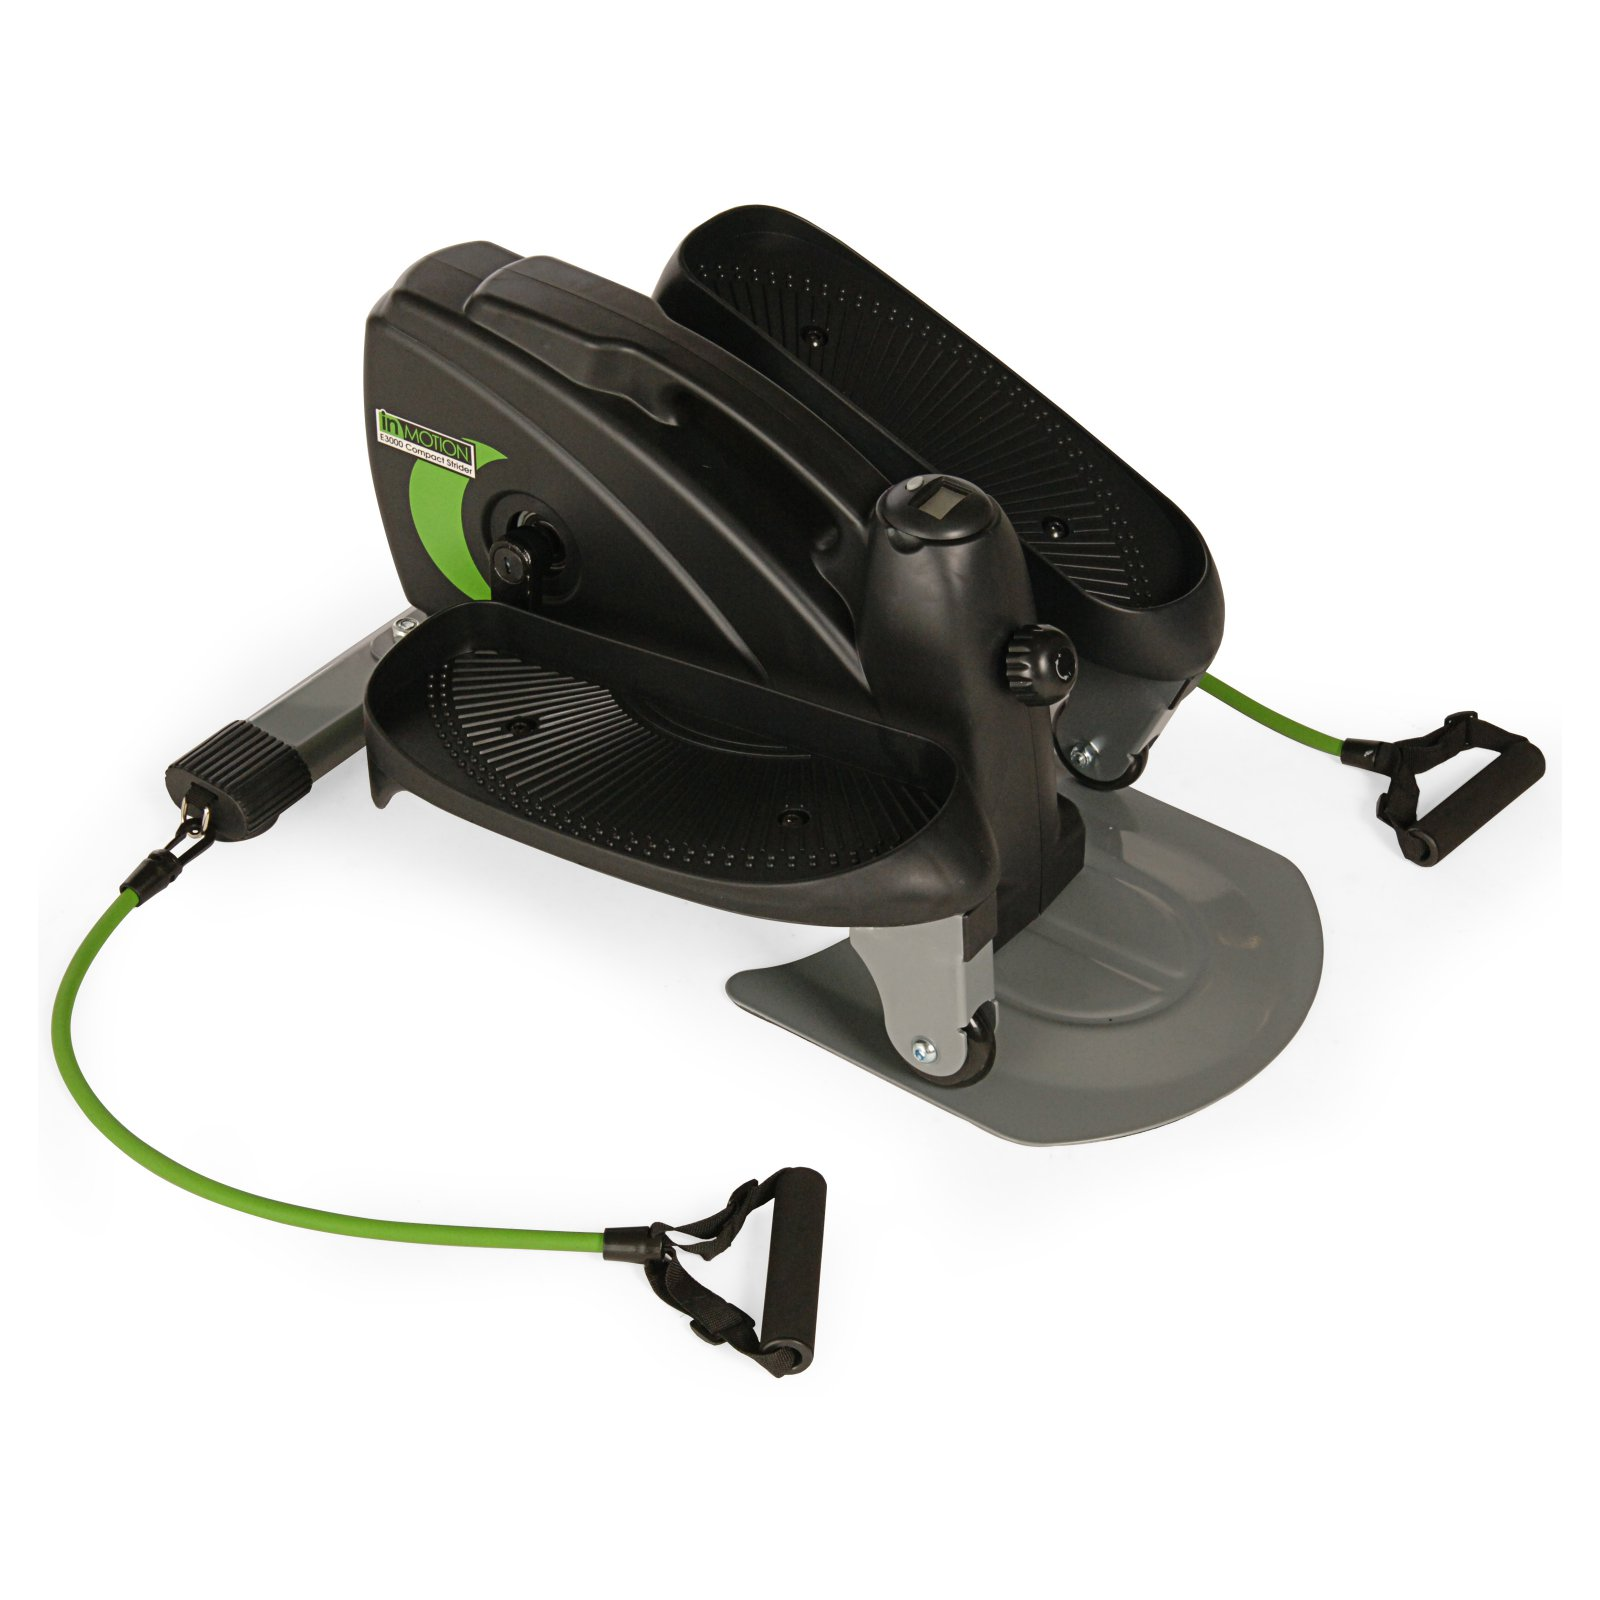 InMotion Strider with Cords and DVD by Stamina Products, Inc.